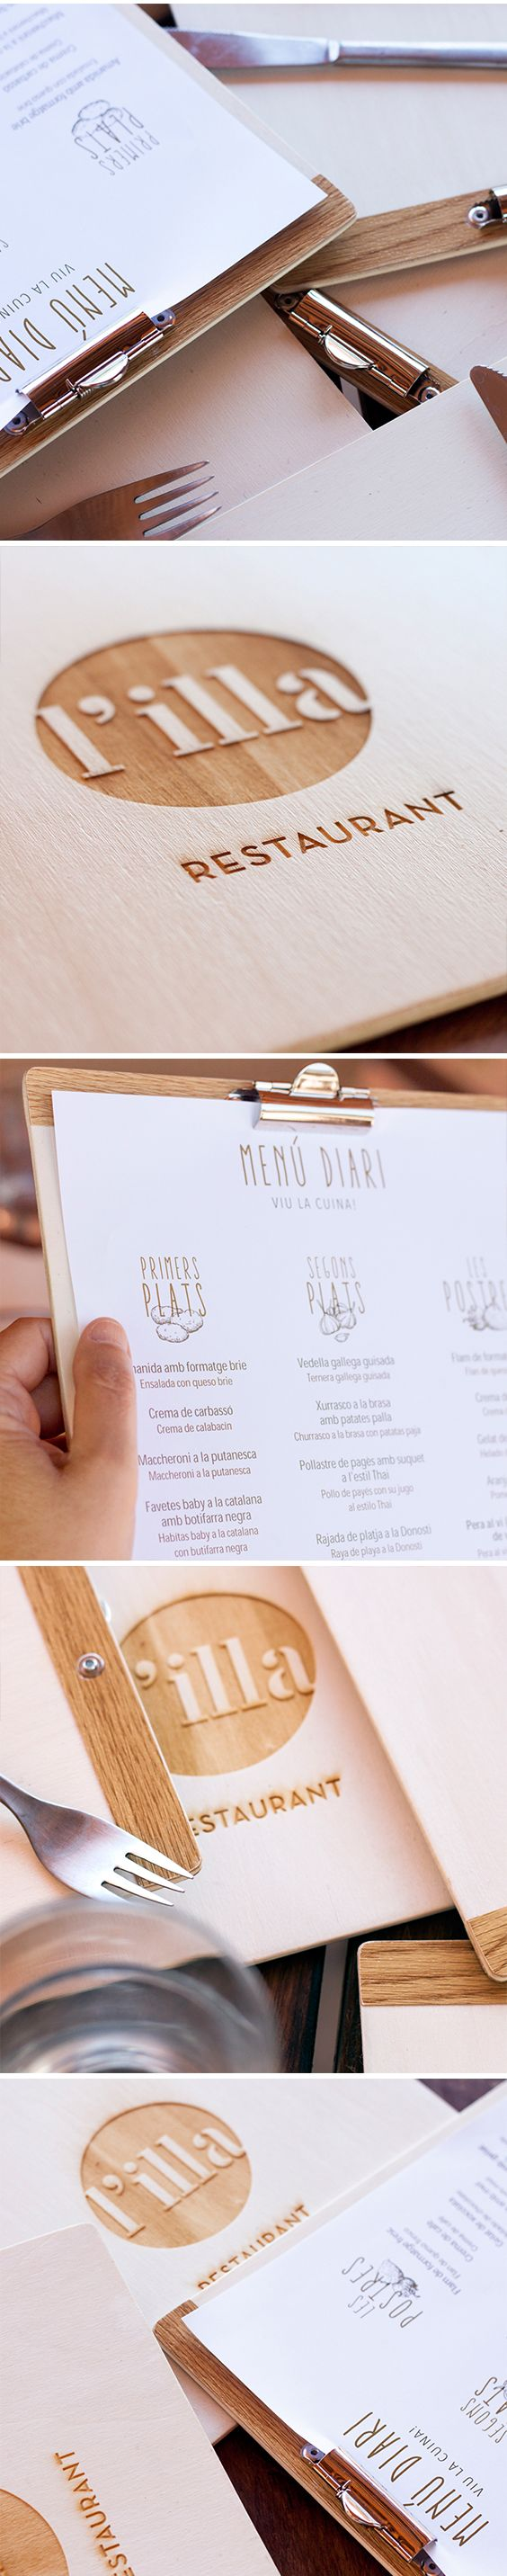 A restaurant menu design. The logo is printed by laser on wood. A good idea for restaurants that change its menu daily.